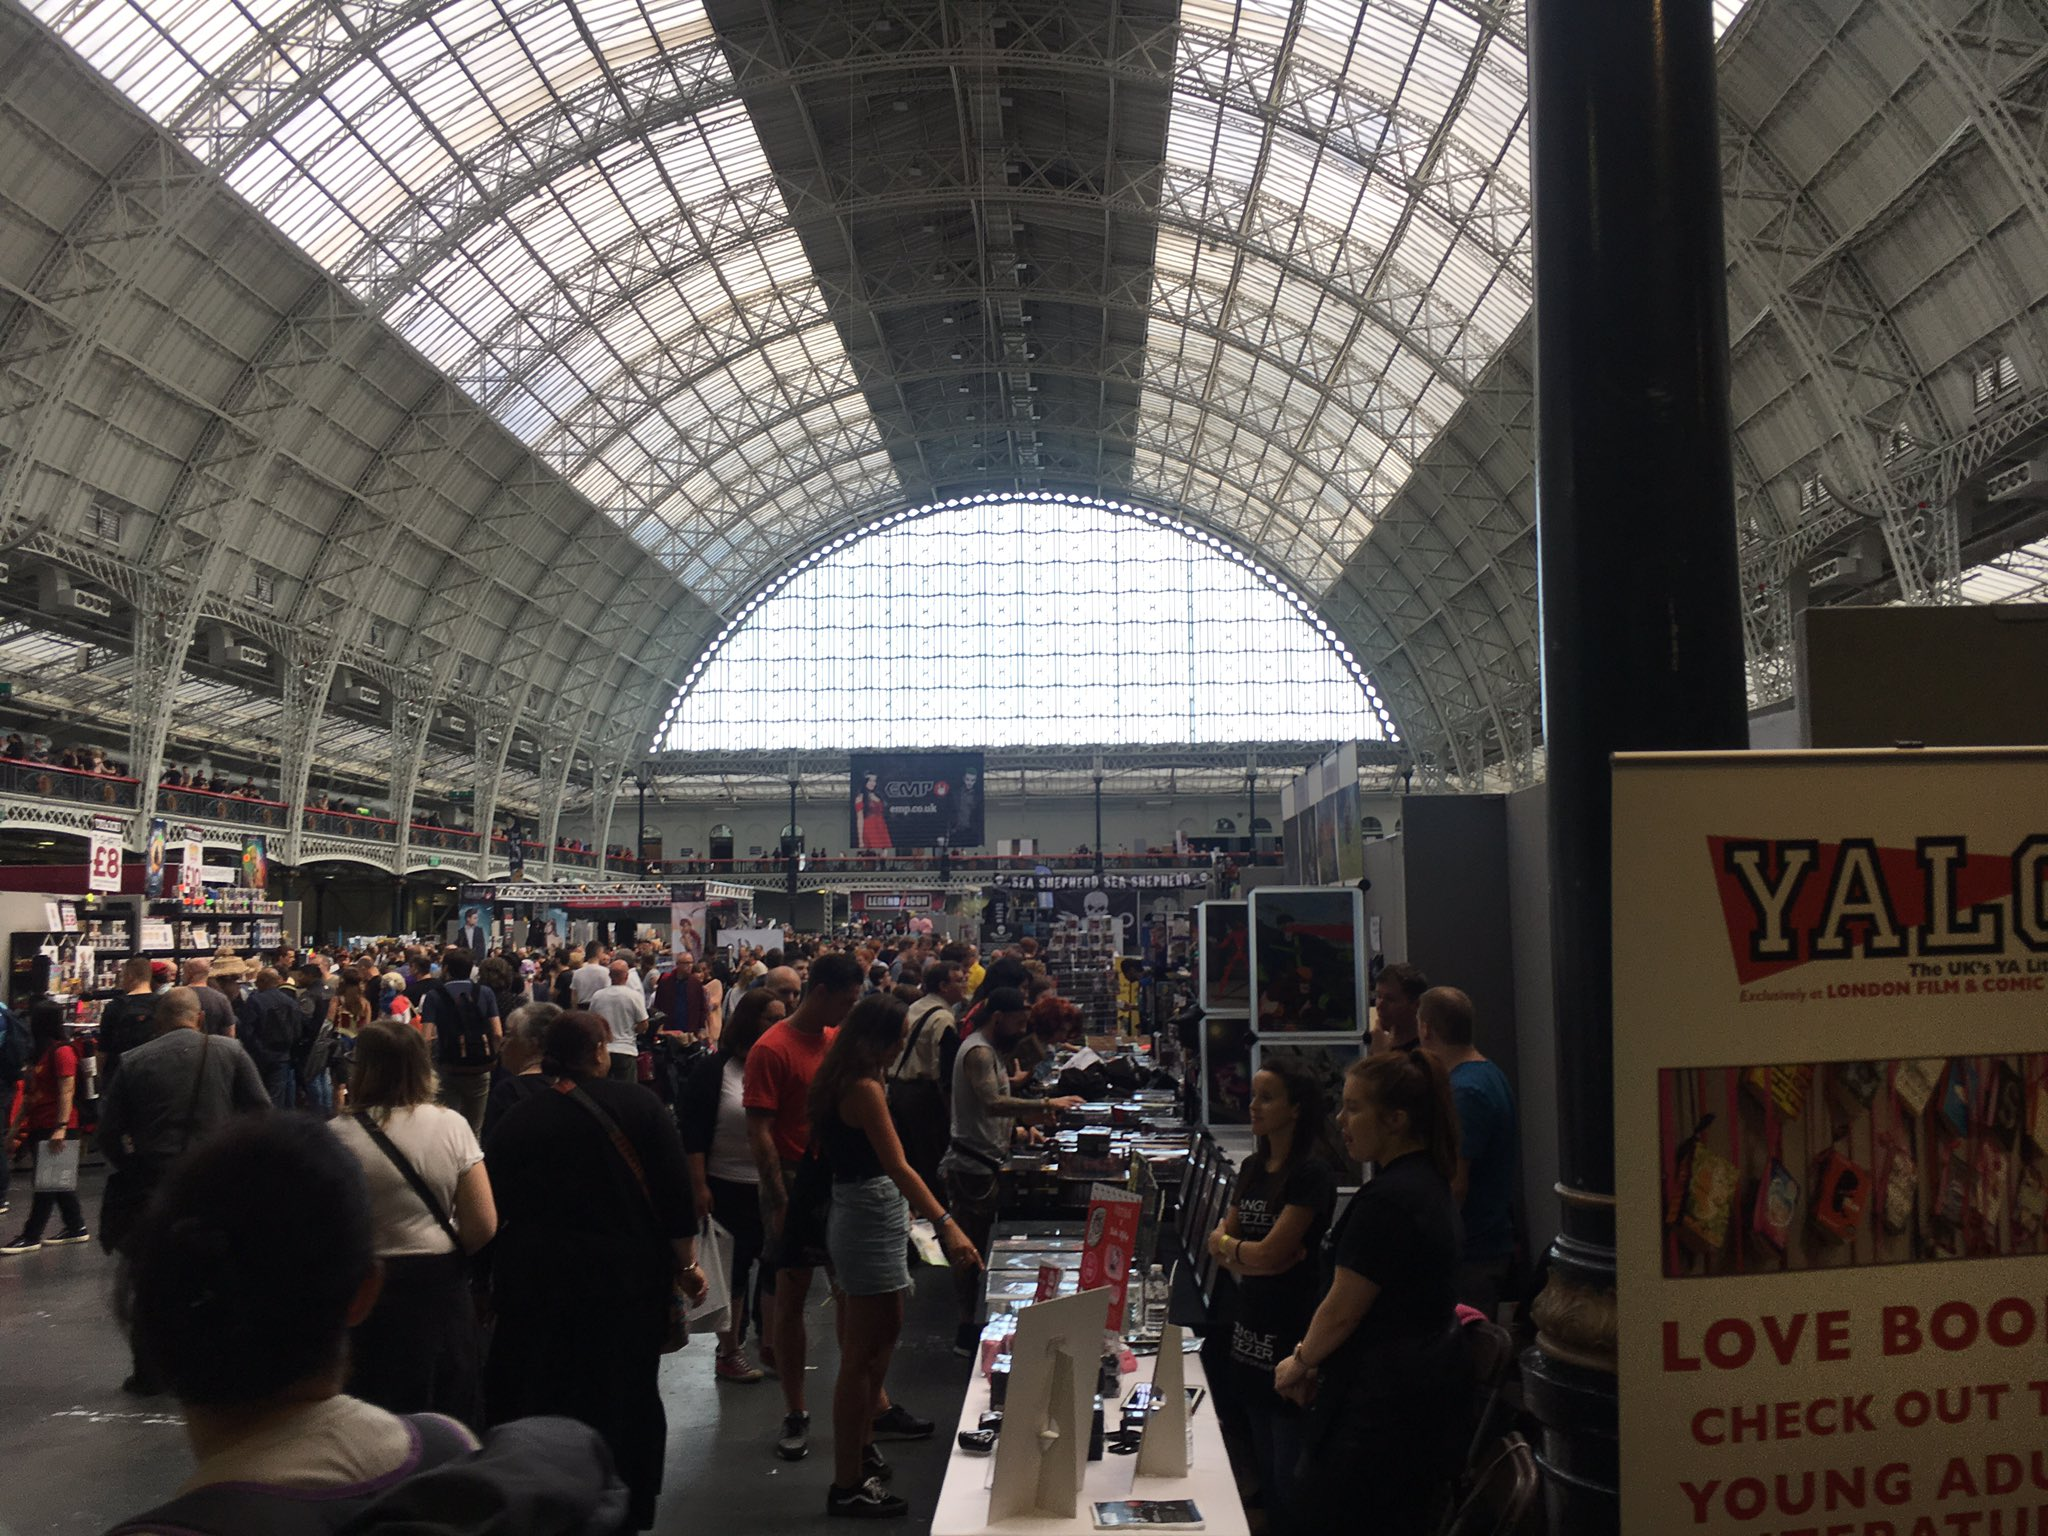 Getting my geek on at @Showmasters Comic Con with @ThatGregCosta and the boys https://t.co/UIC07TDss6